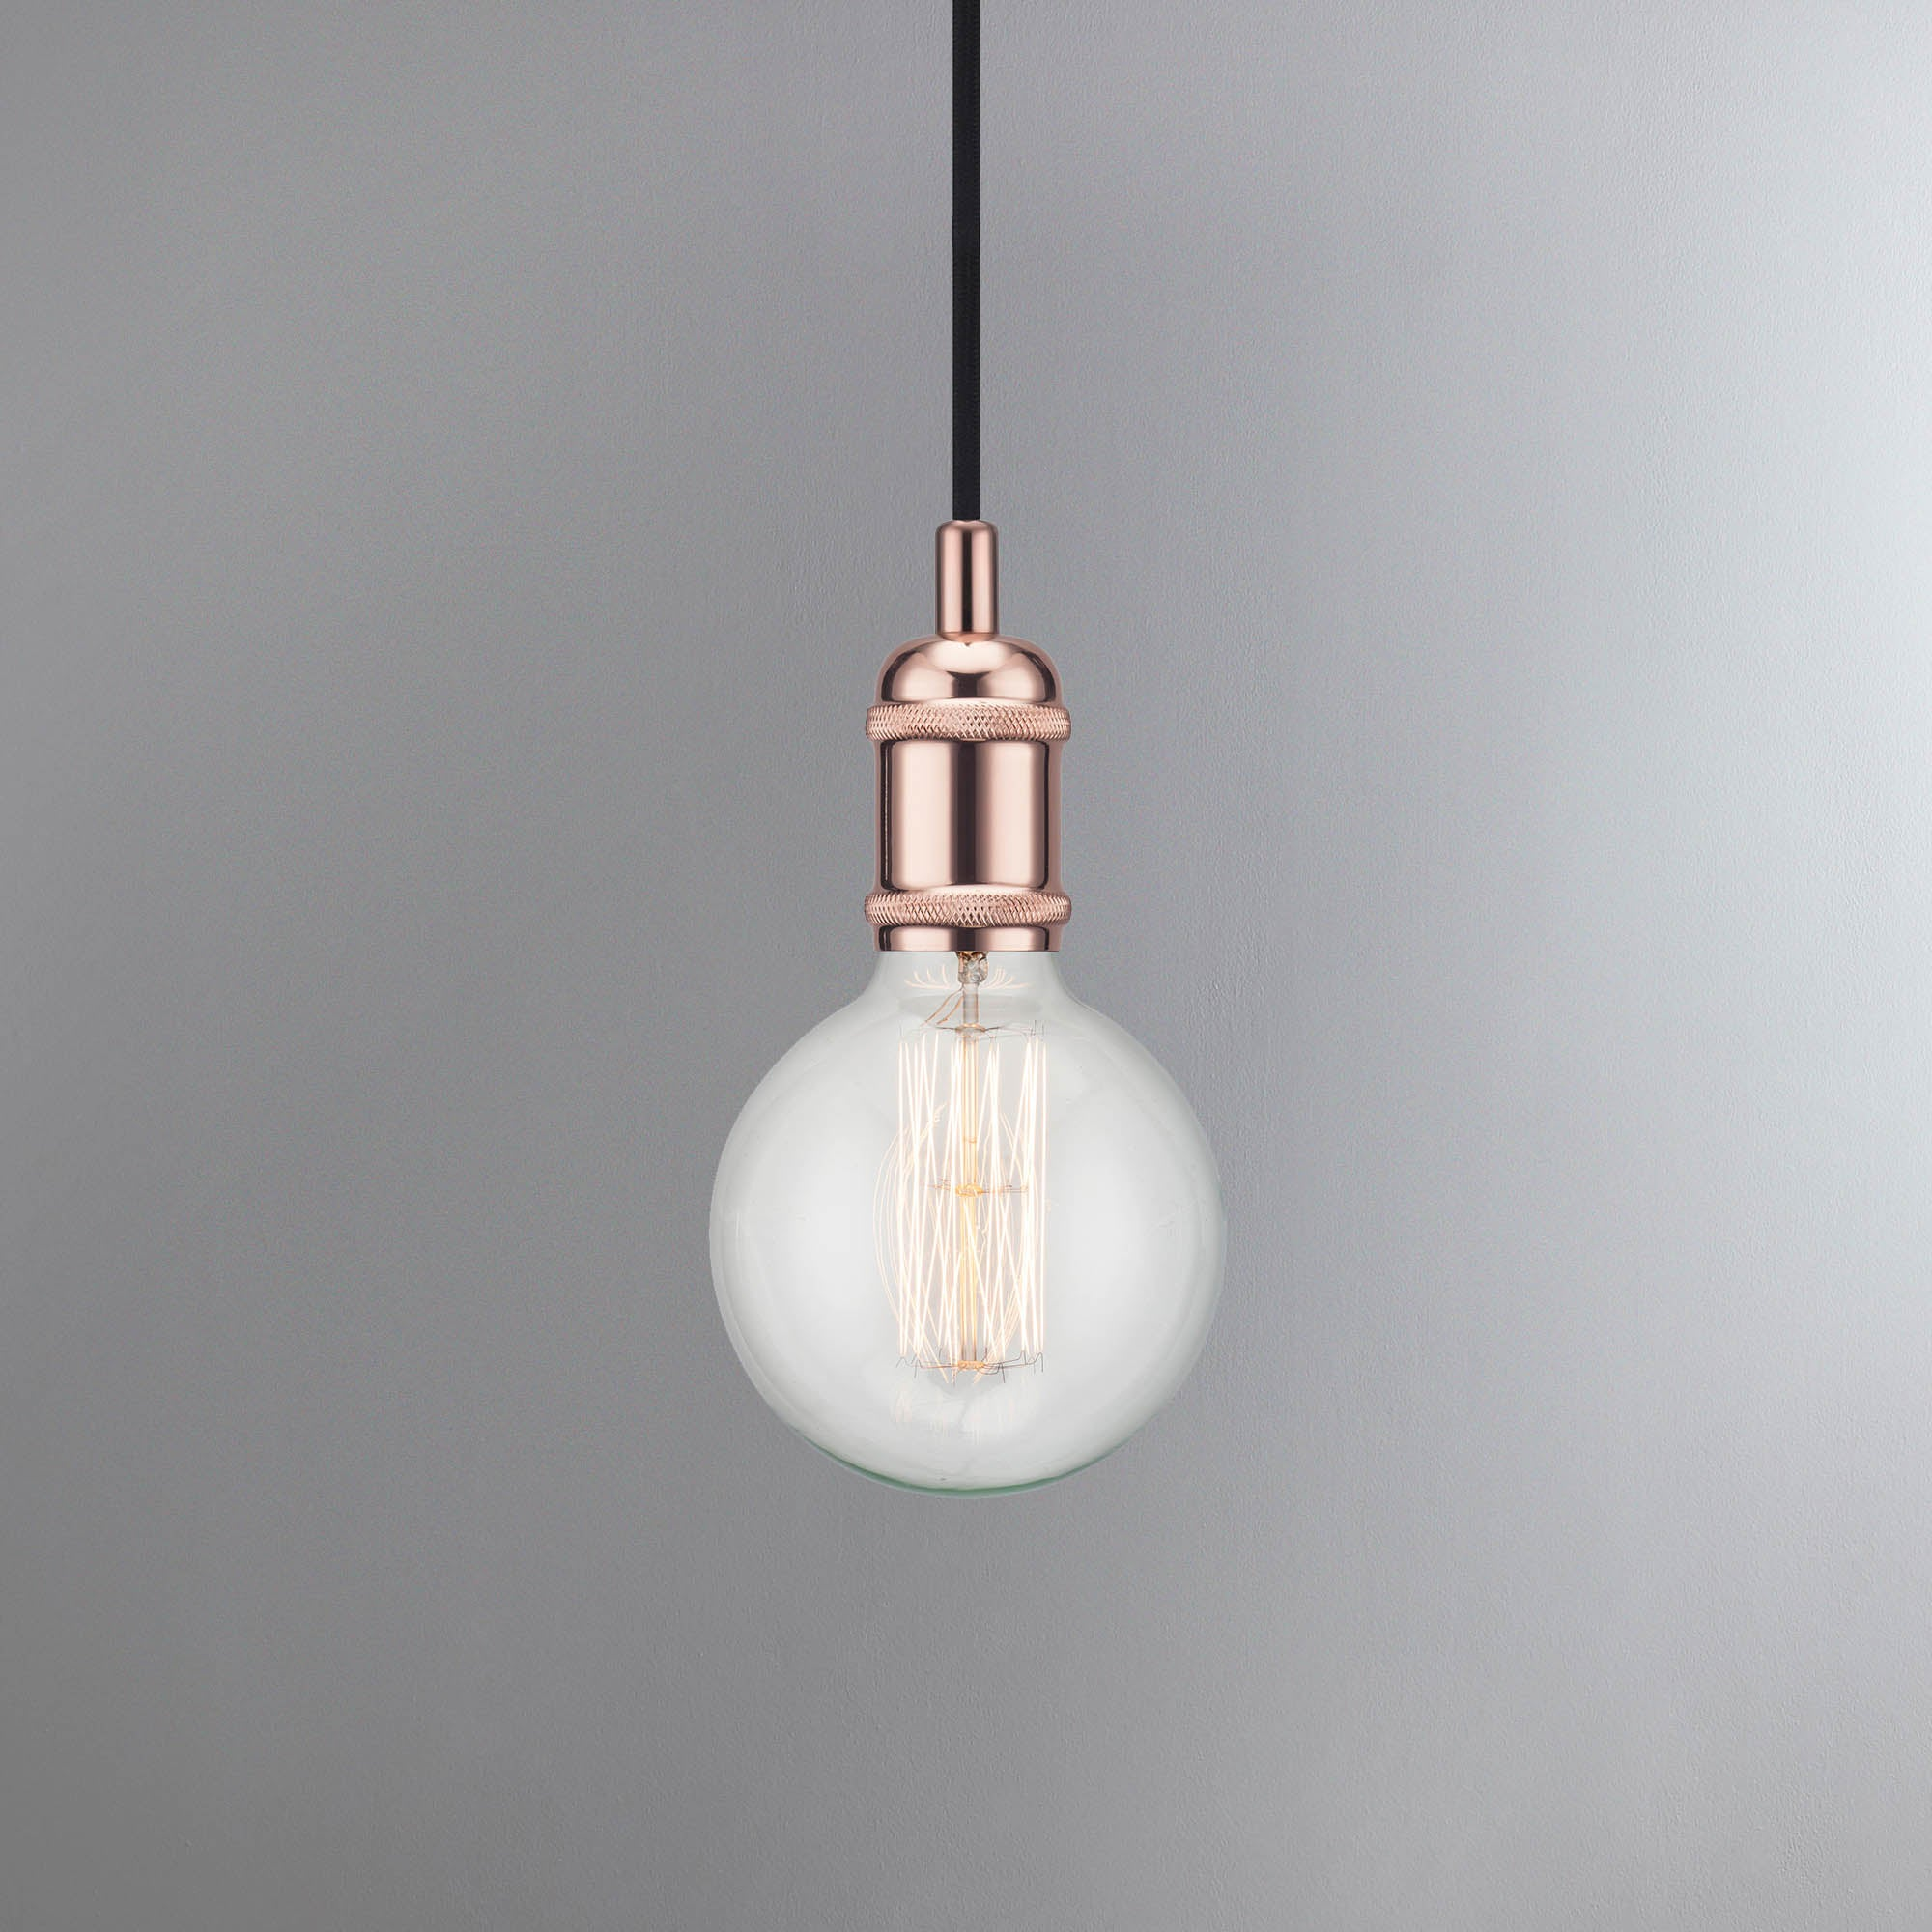 Image of Avra Copper Suspension Light Pendant Copper